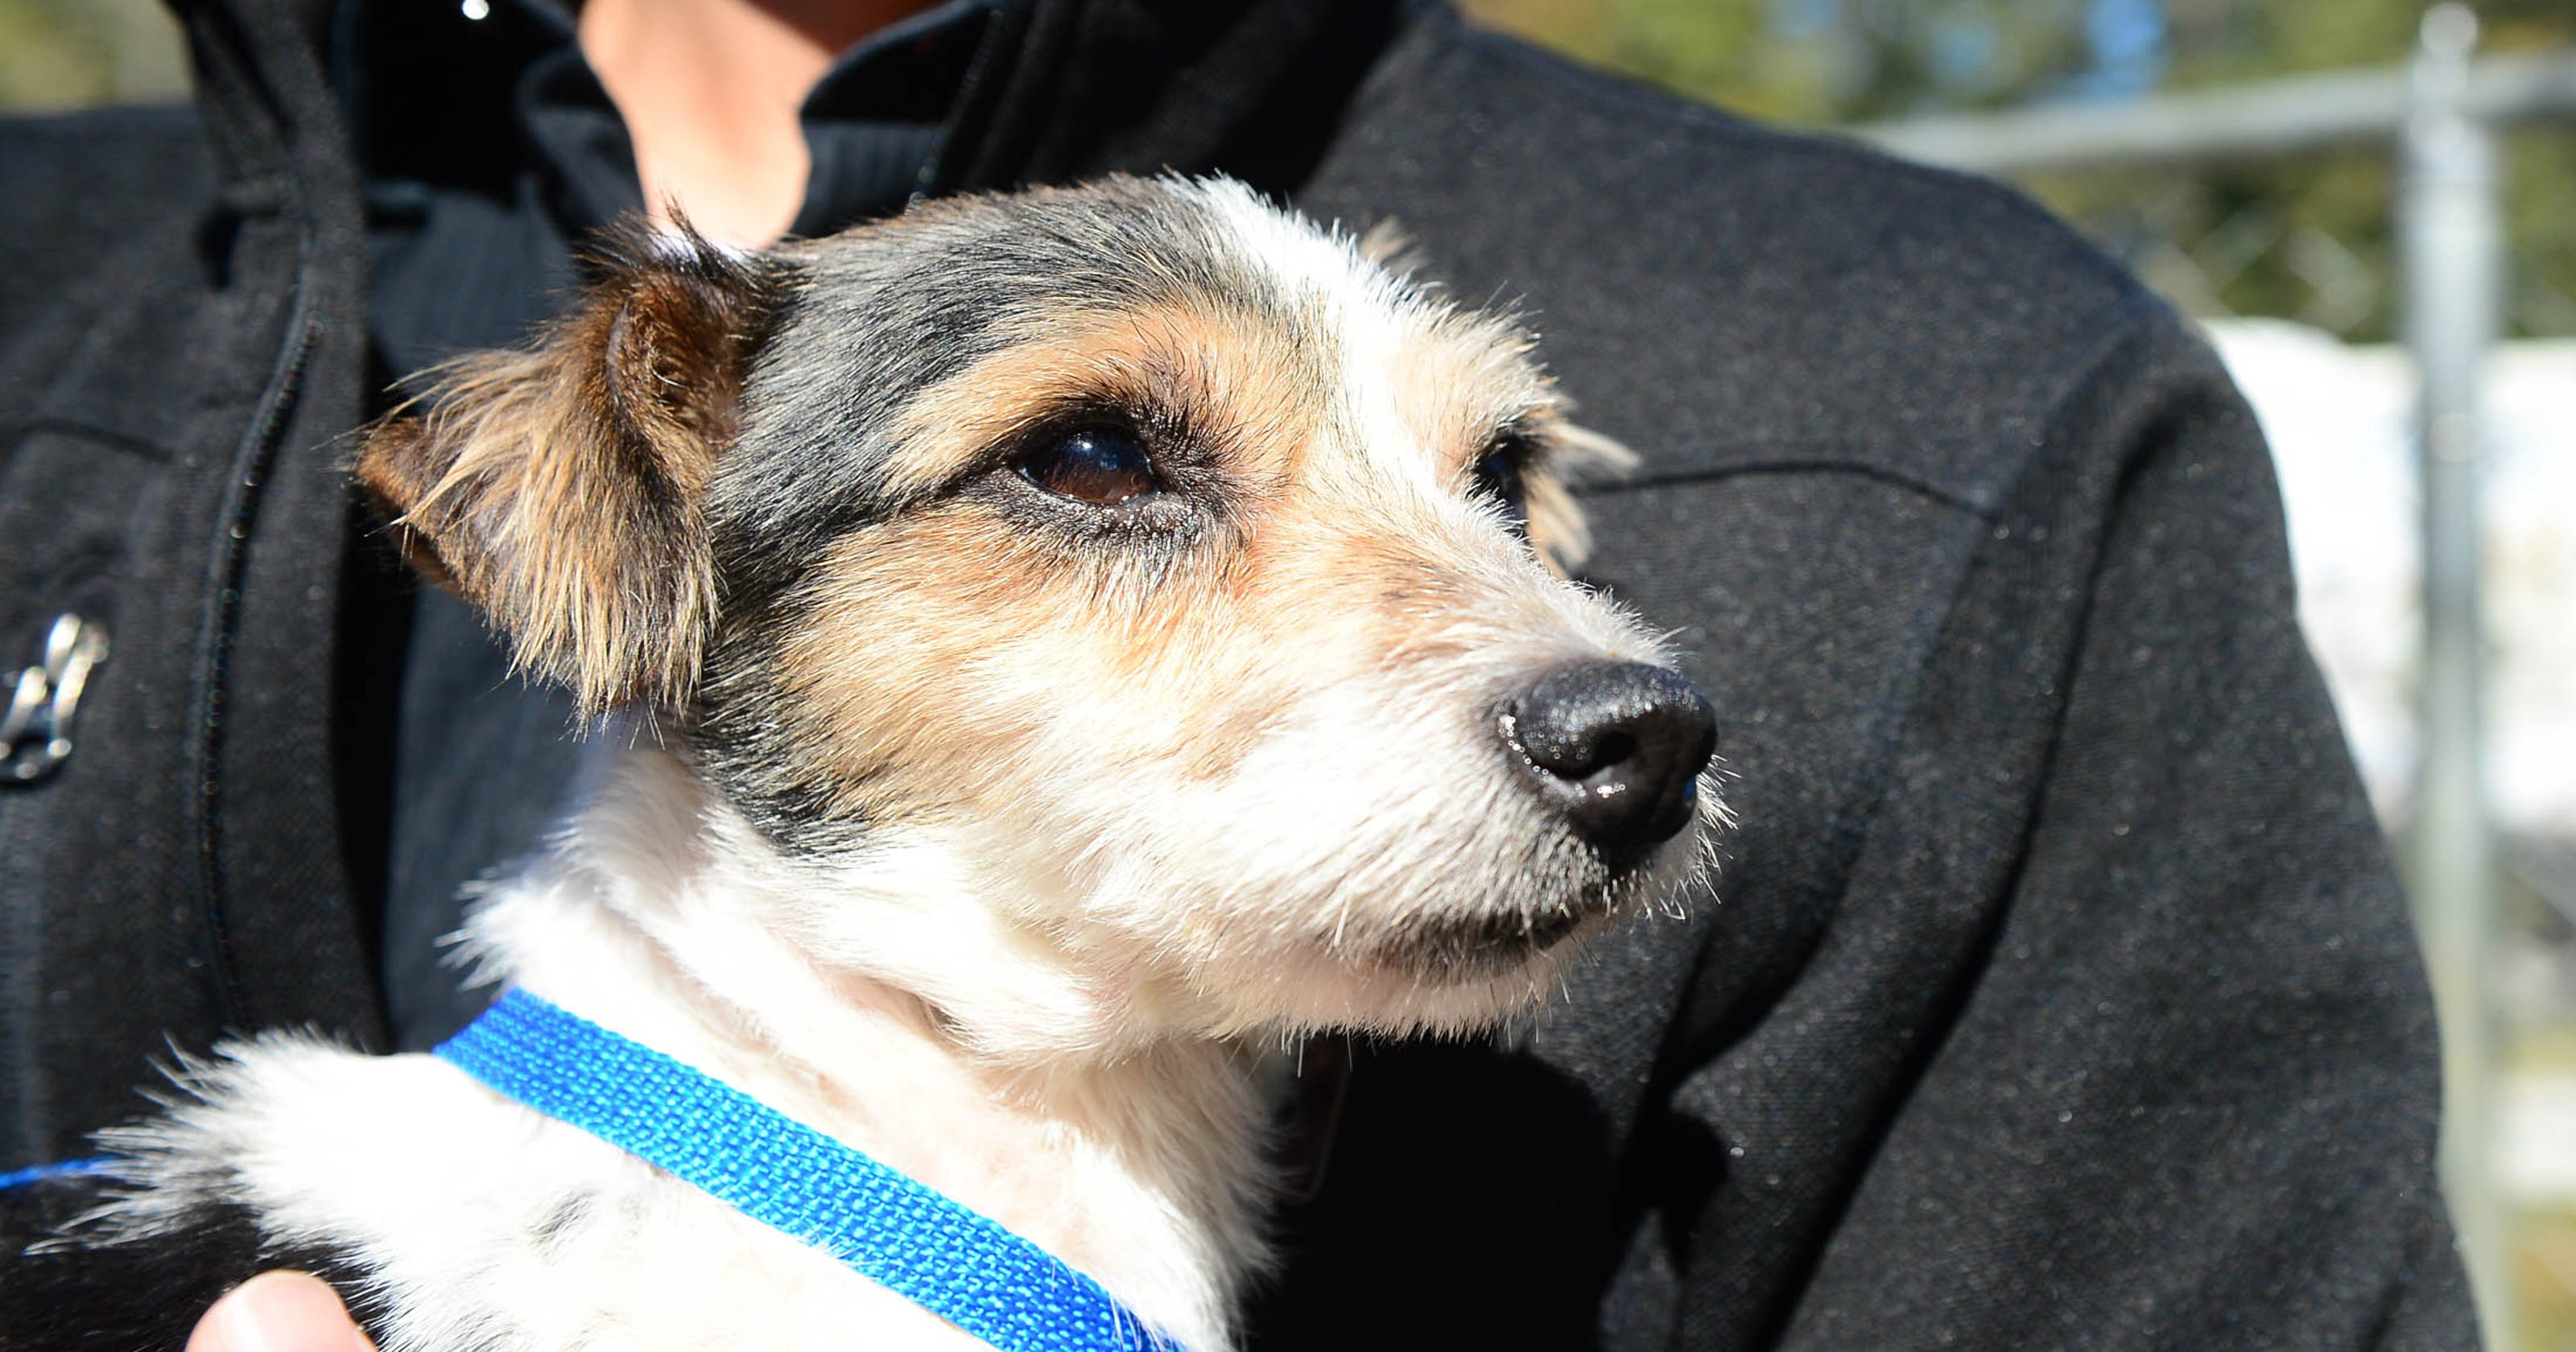 3 dogs ready for adoption from Seaford animal cruelty case